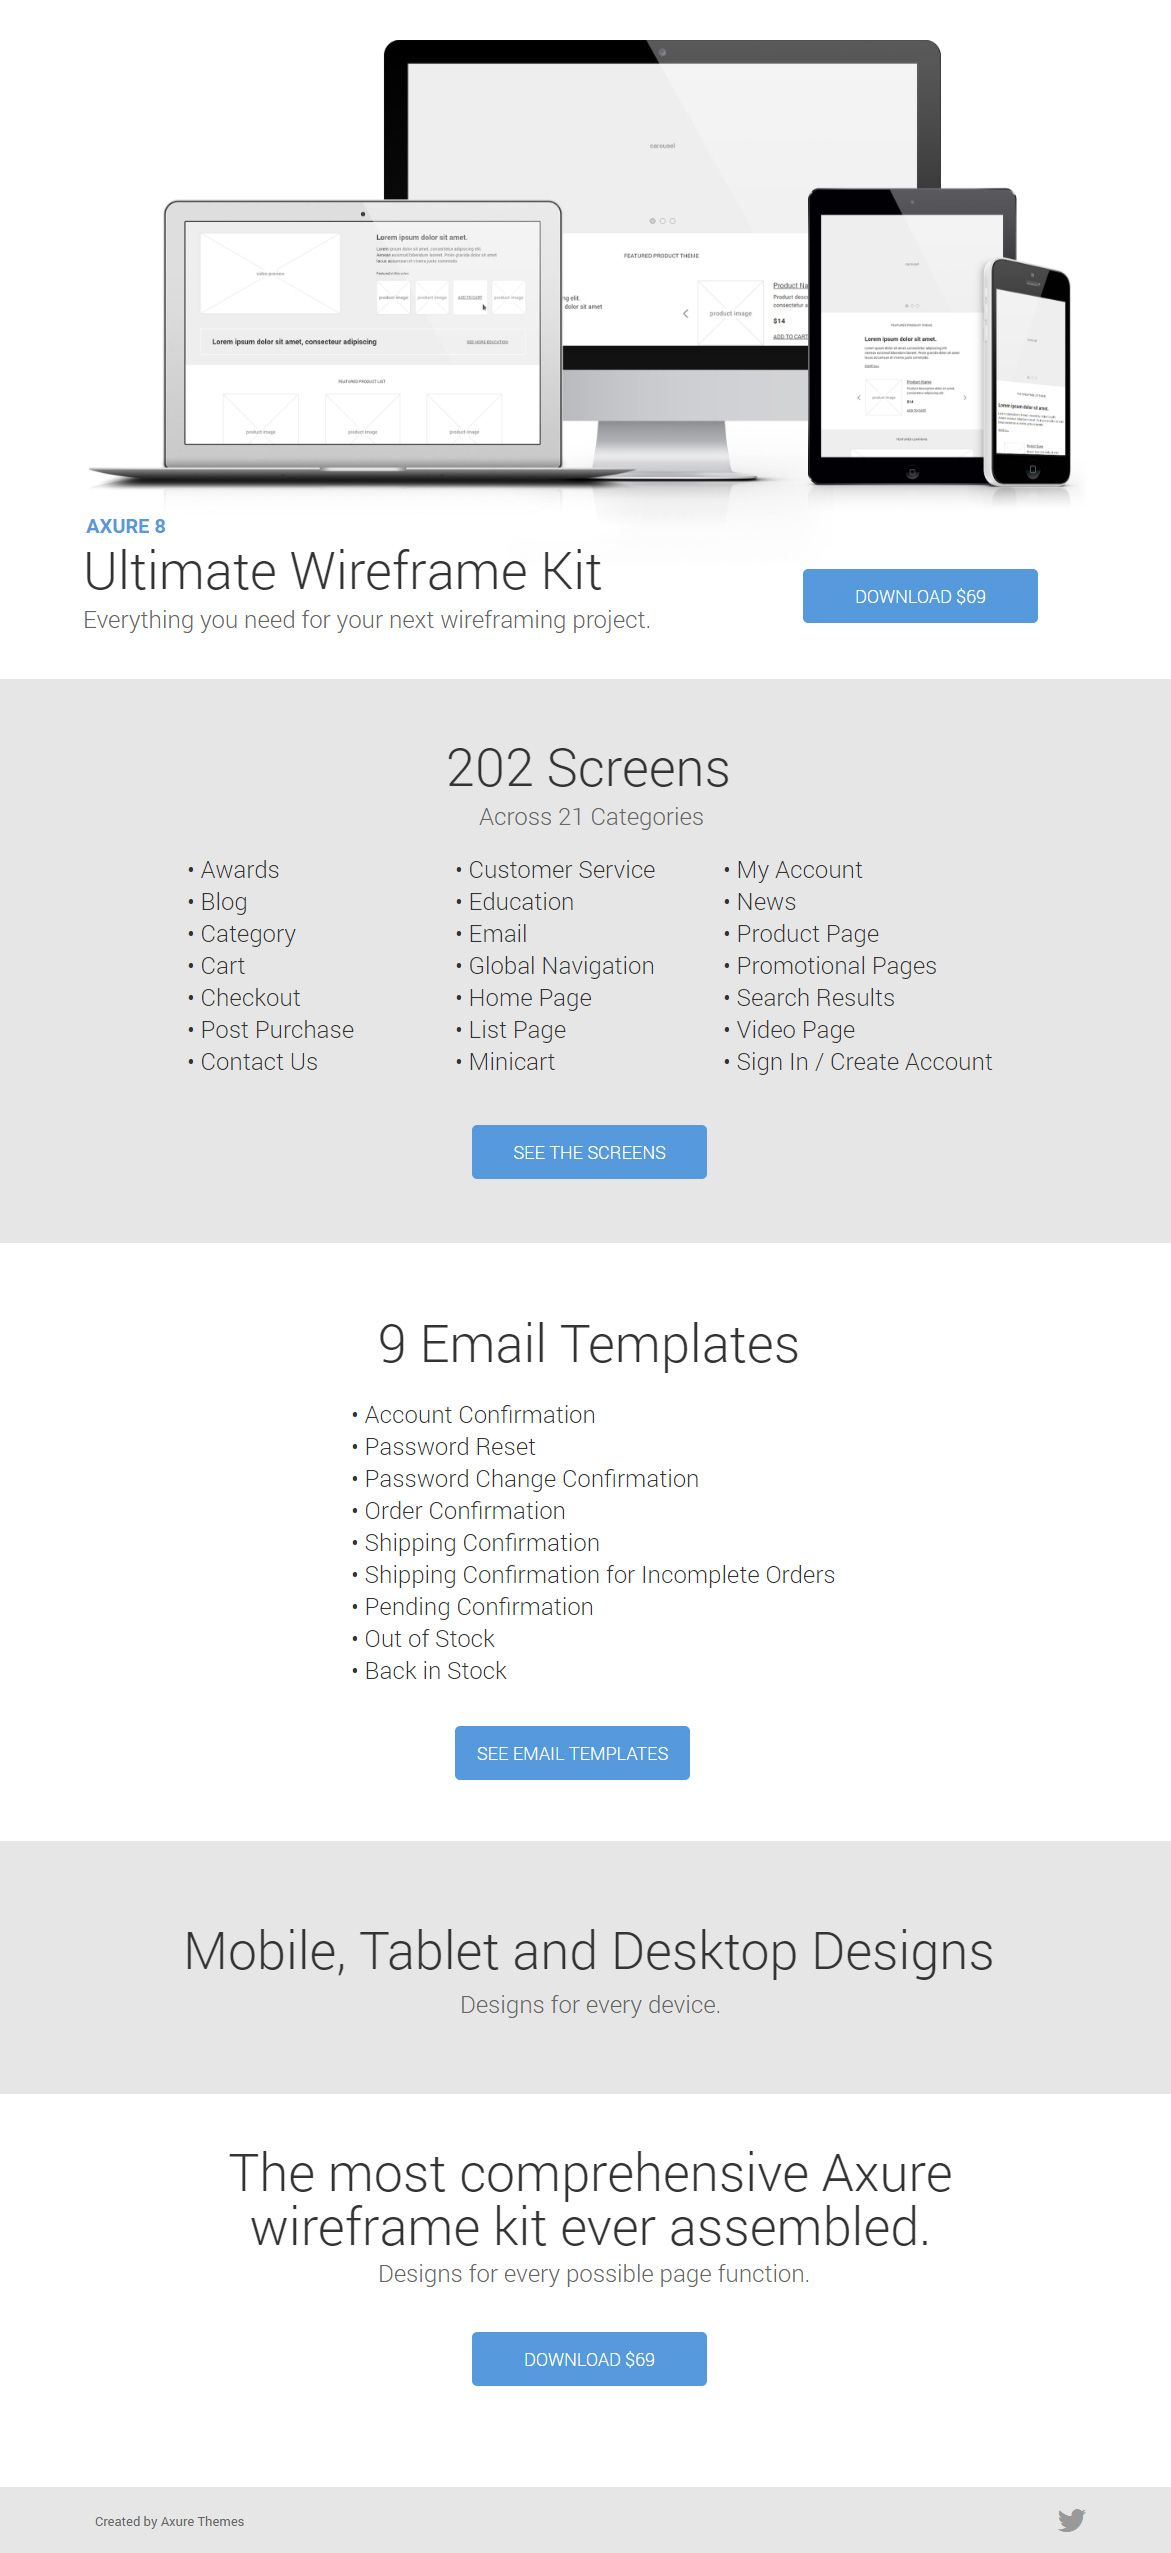 axure tablet template - axure wireframe kit 200 screens mobile tablet and